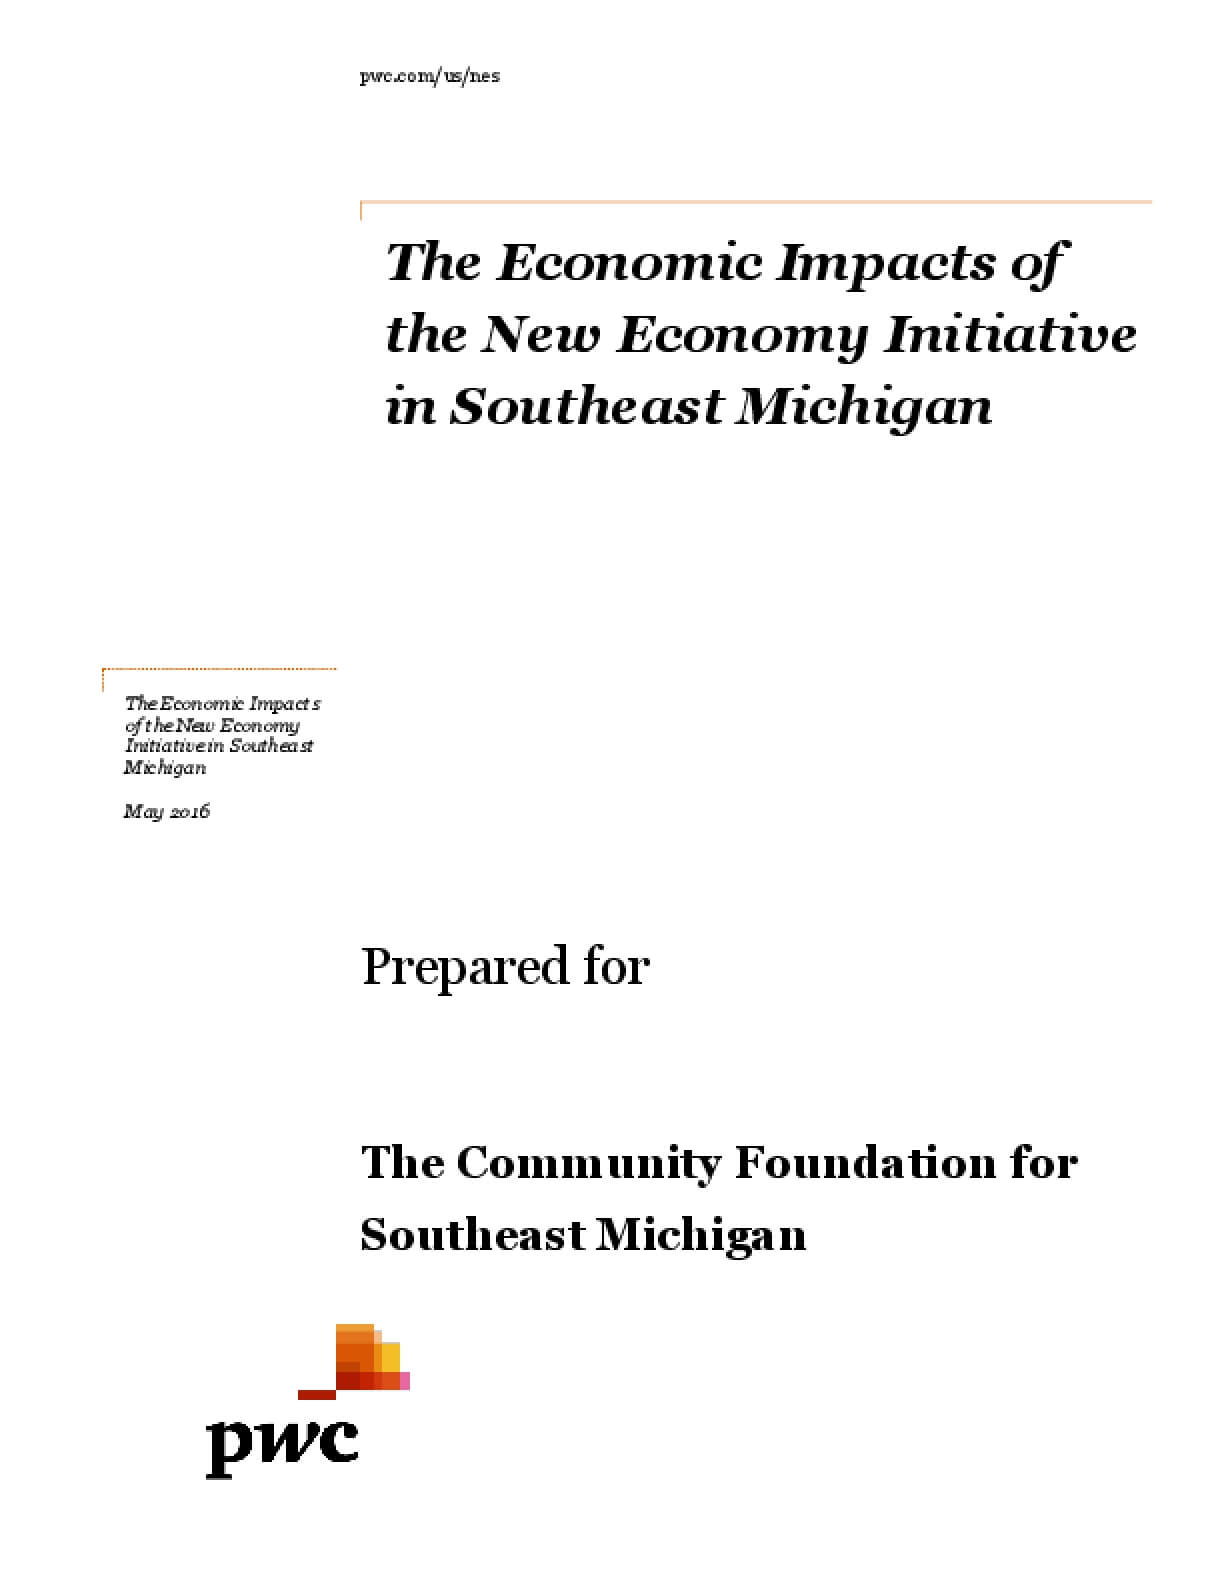 The Economic Impacts of the New Economy Initiative in Southeast Michigan